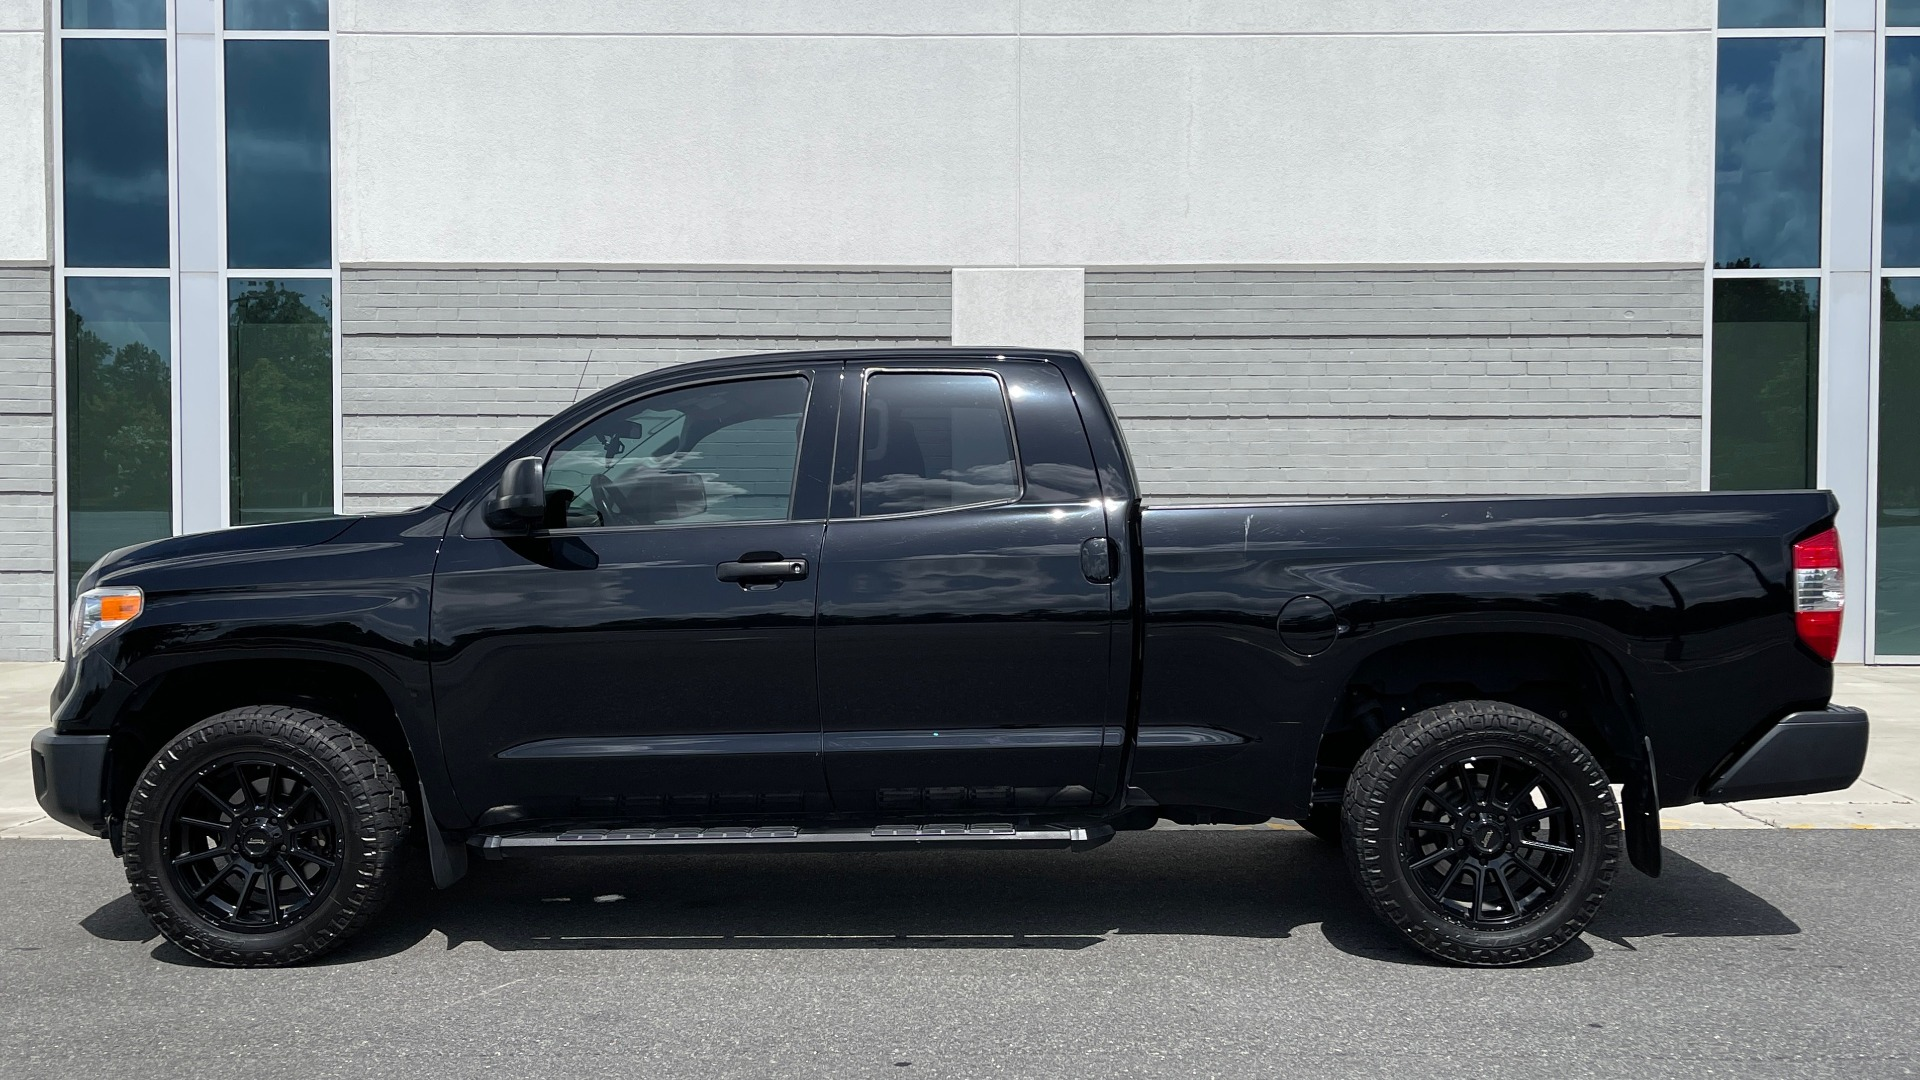 Used 2017 Toyota TUNDRA 4WD SR DOUBLECAB / 4WD / 6.5' BED / V8 / AUTO / REARVIEW for sale Sold at Formula Imports in Charlotte NC 28227 3